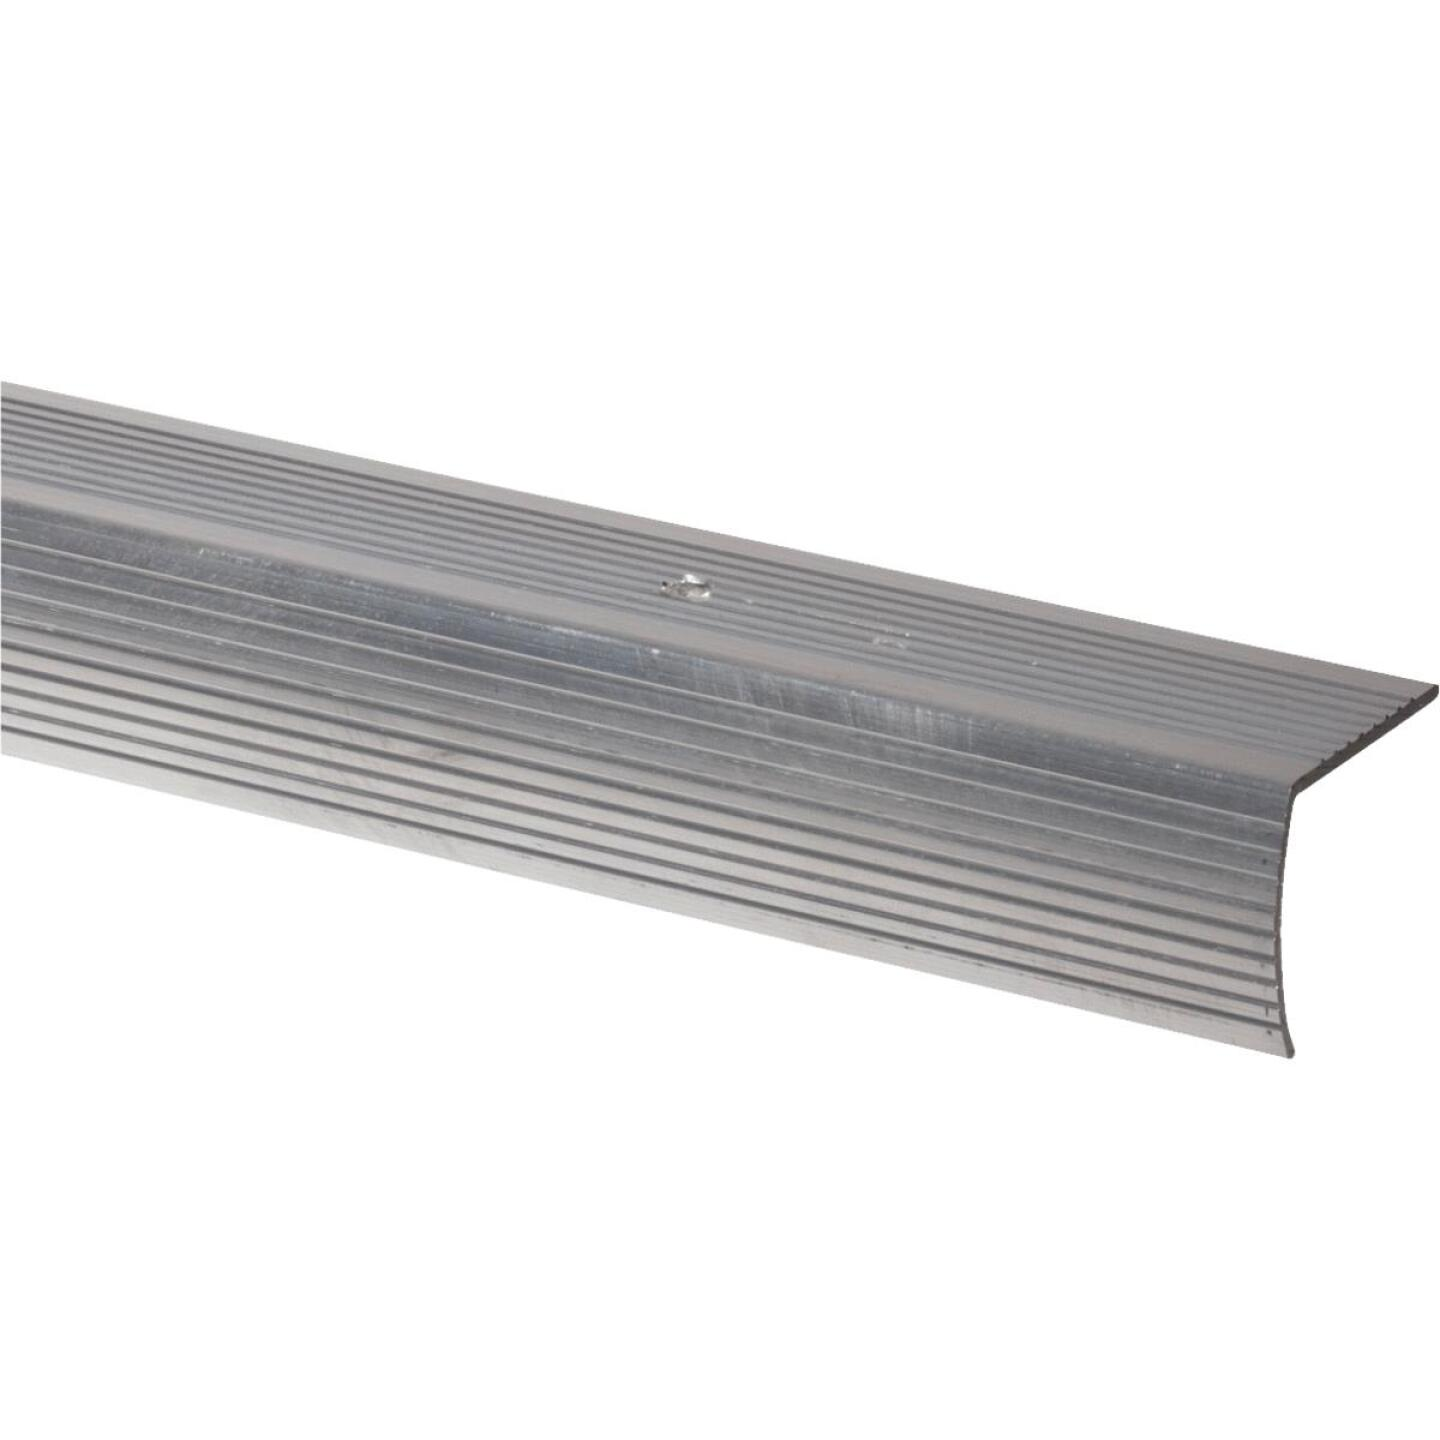 Do it Satin Silver 1-1/8 In. W x 36 In. L Aluminum Stairnose Image 1